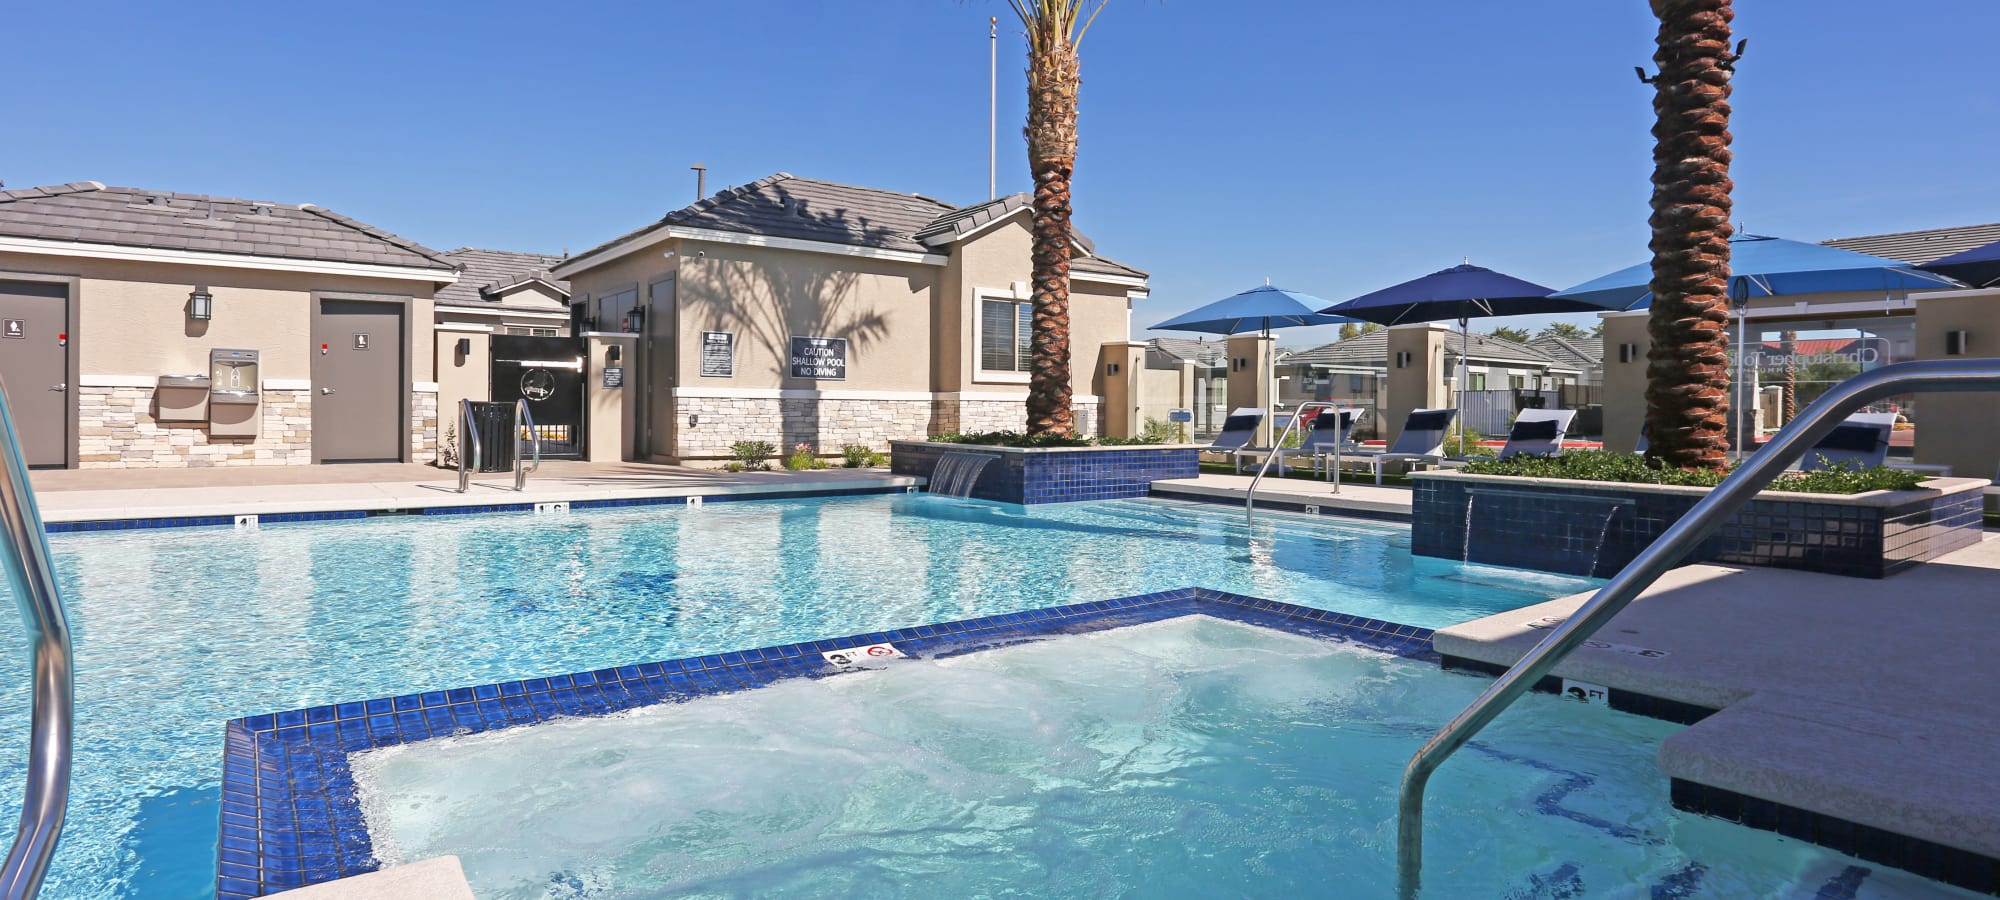 Pool and adjacent spa at Christopher Todd Communities At Stadium in Glendale, Arizona